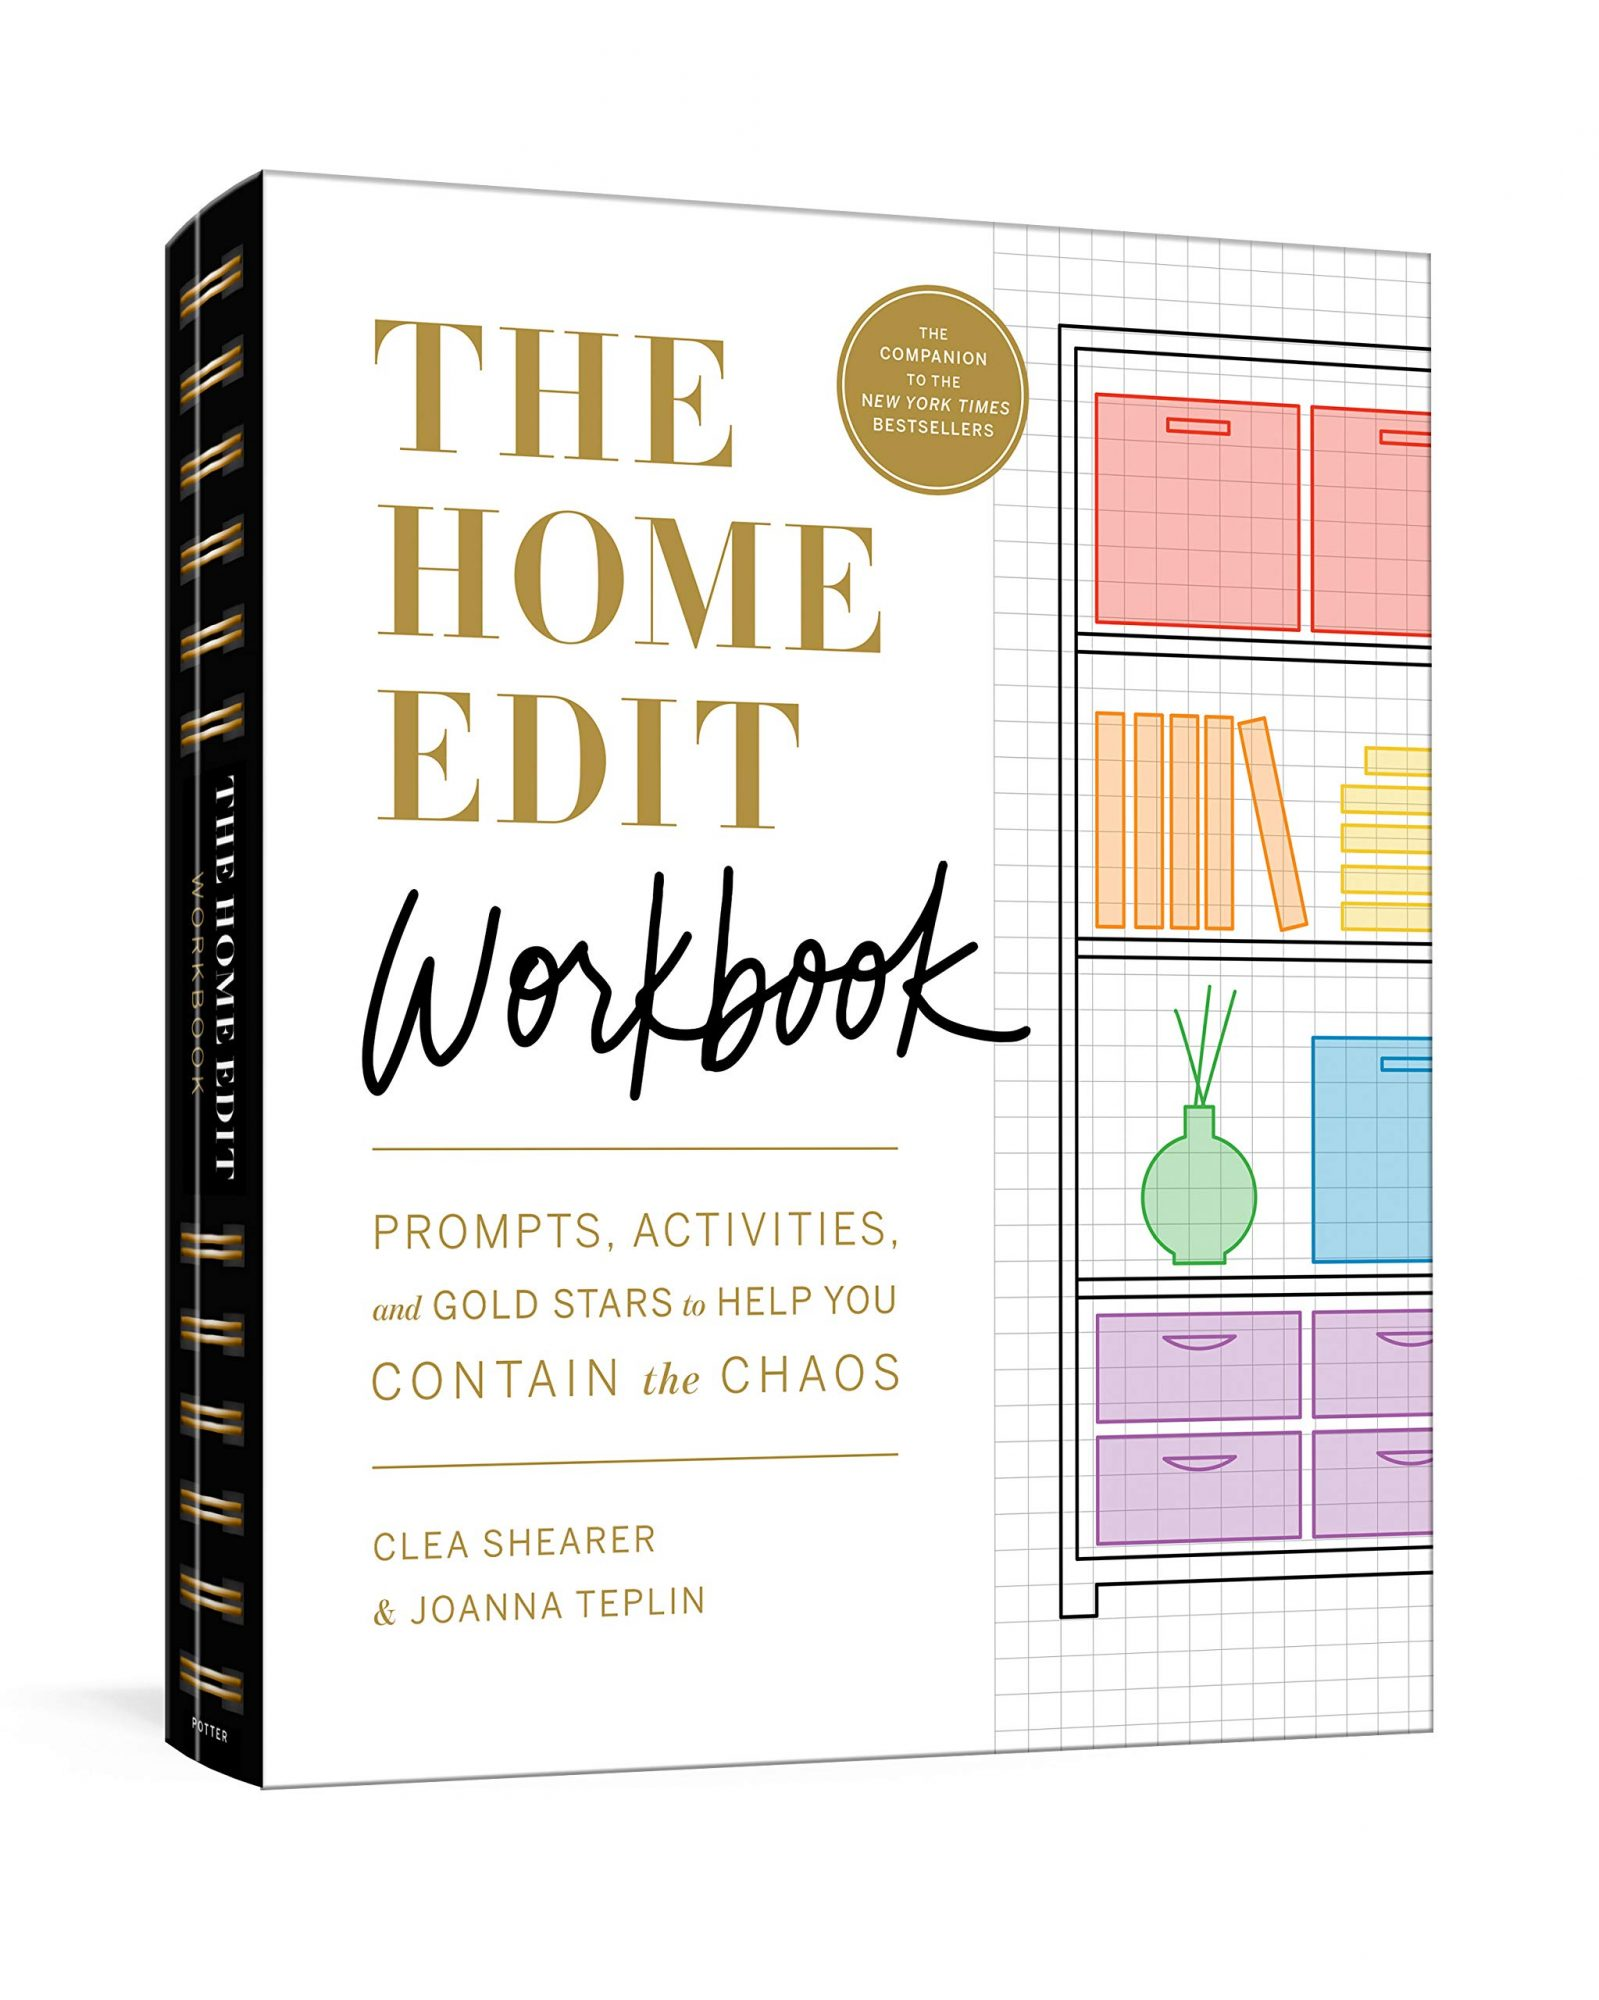 the home edit workbook book cover